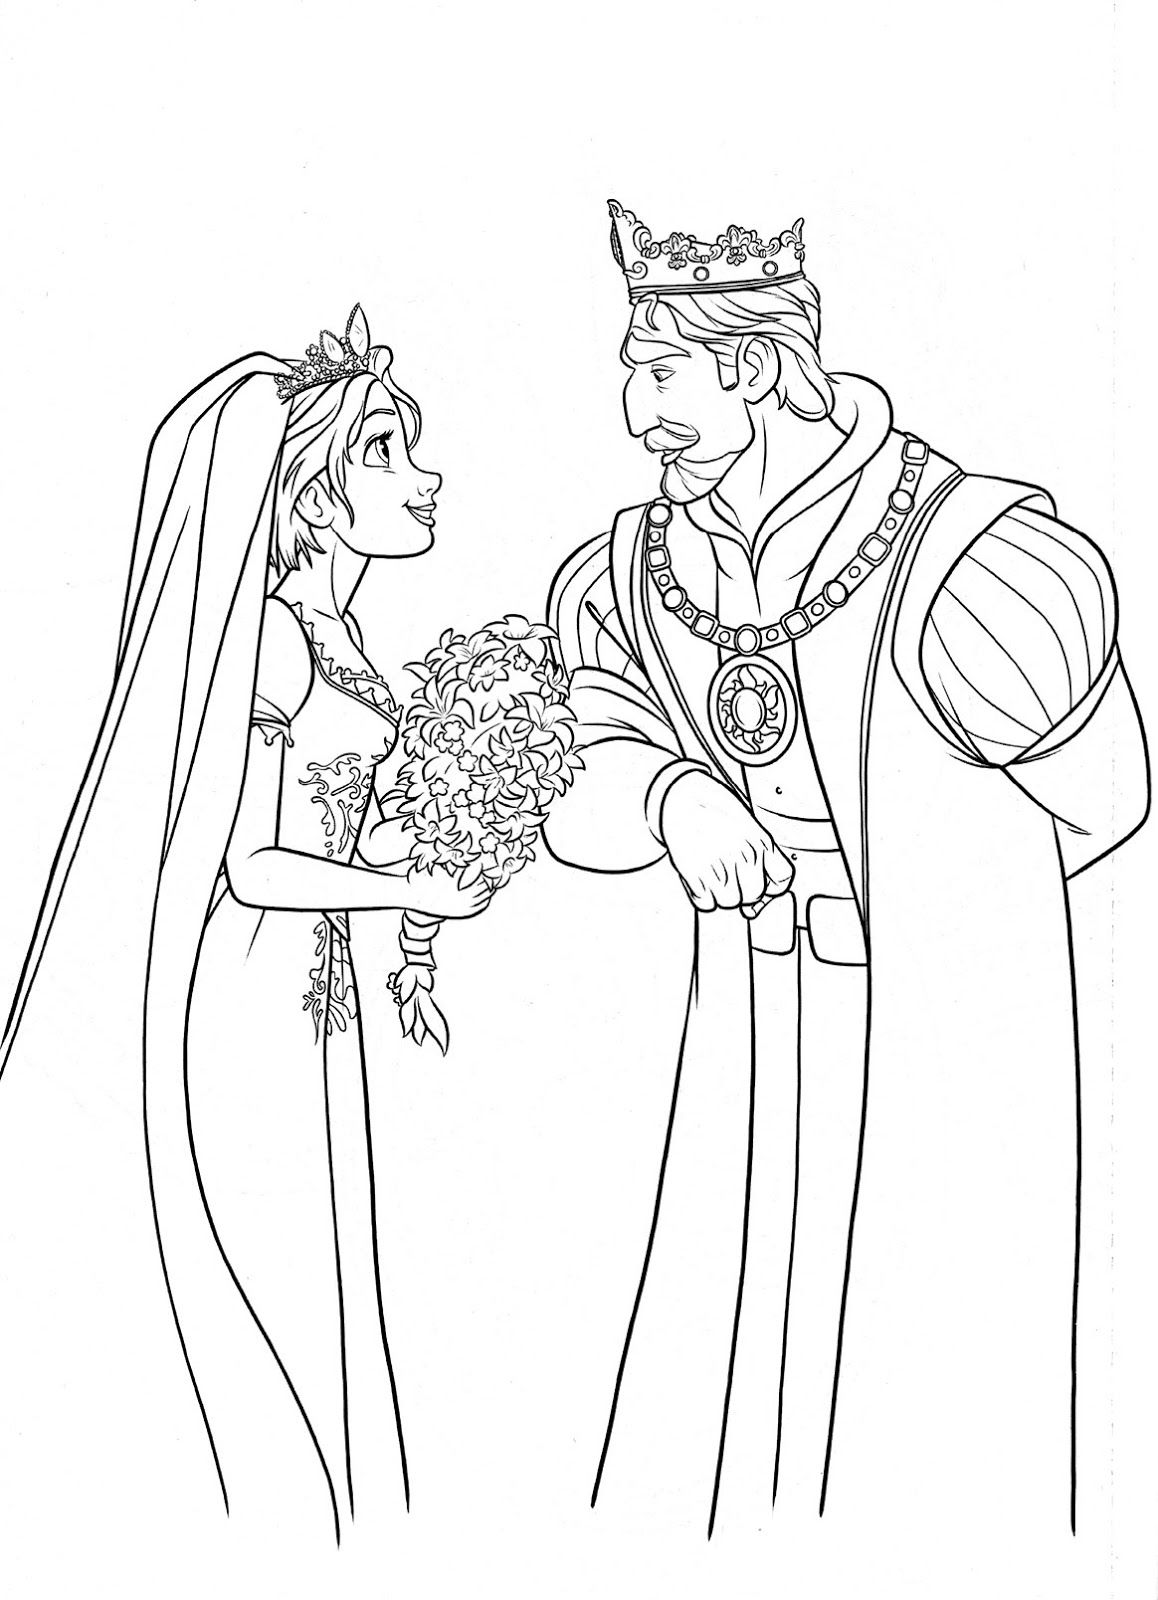 Tangled Rapunzel Coloring Pages Tangled Coloring Pages Disney Princess Coloring Pages Princess Coloring Pages